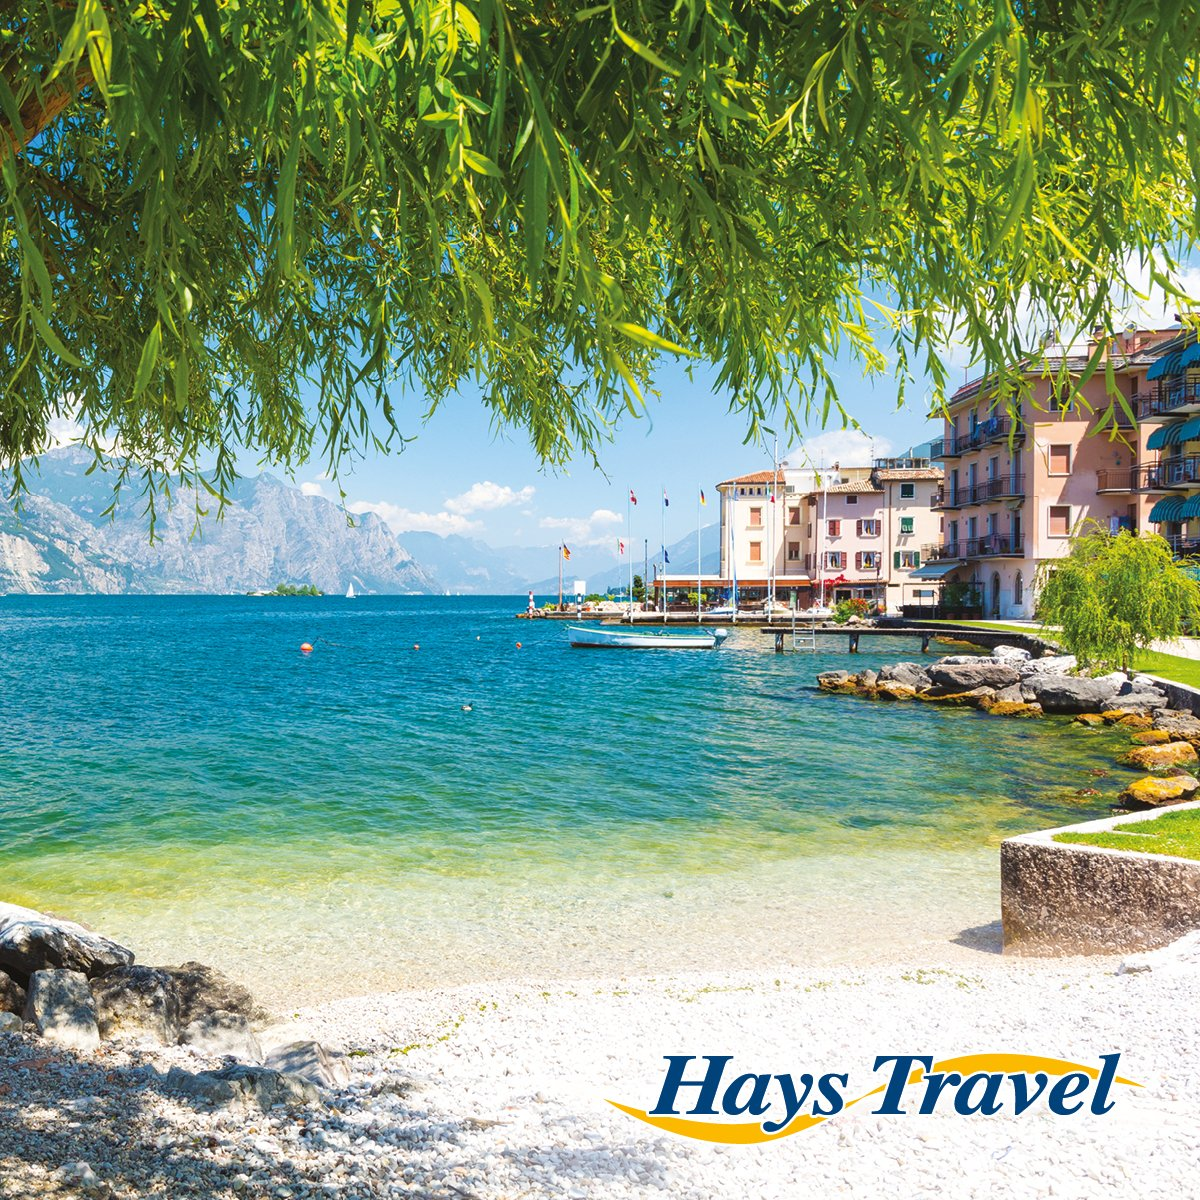 hays travel - photo #33